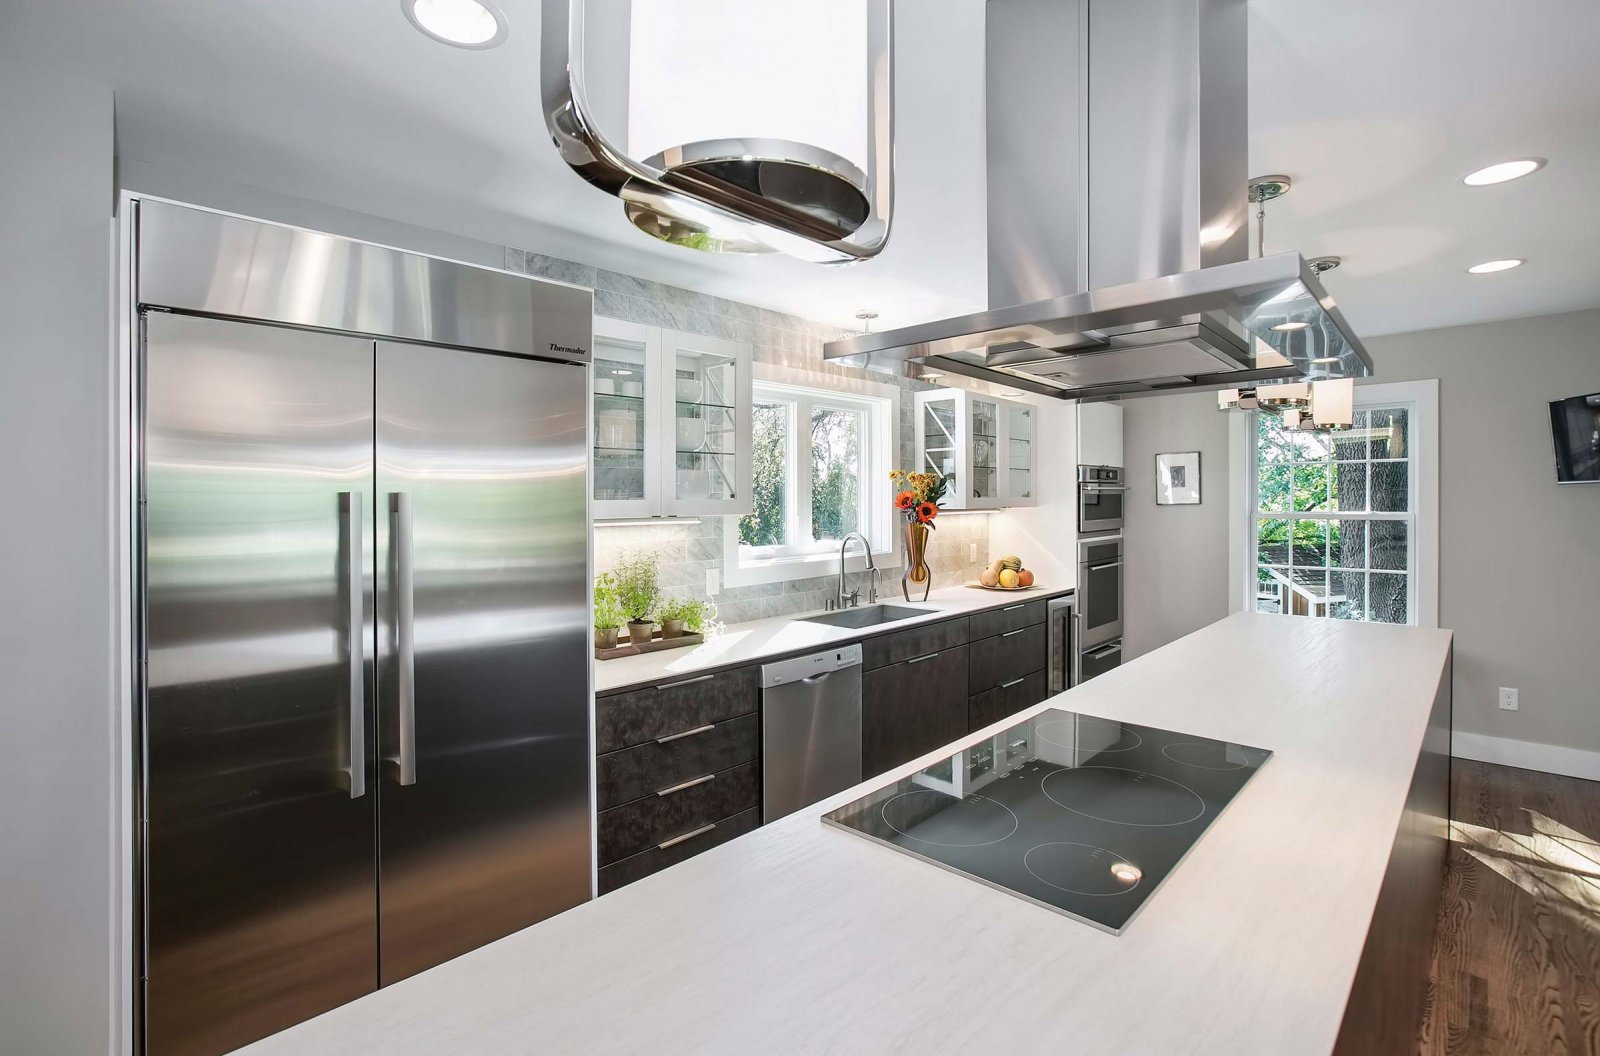 Miinus eco-friendly kitchen brushed steel effect units stainless steel appliance and white ceramic worktops